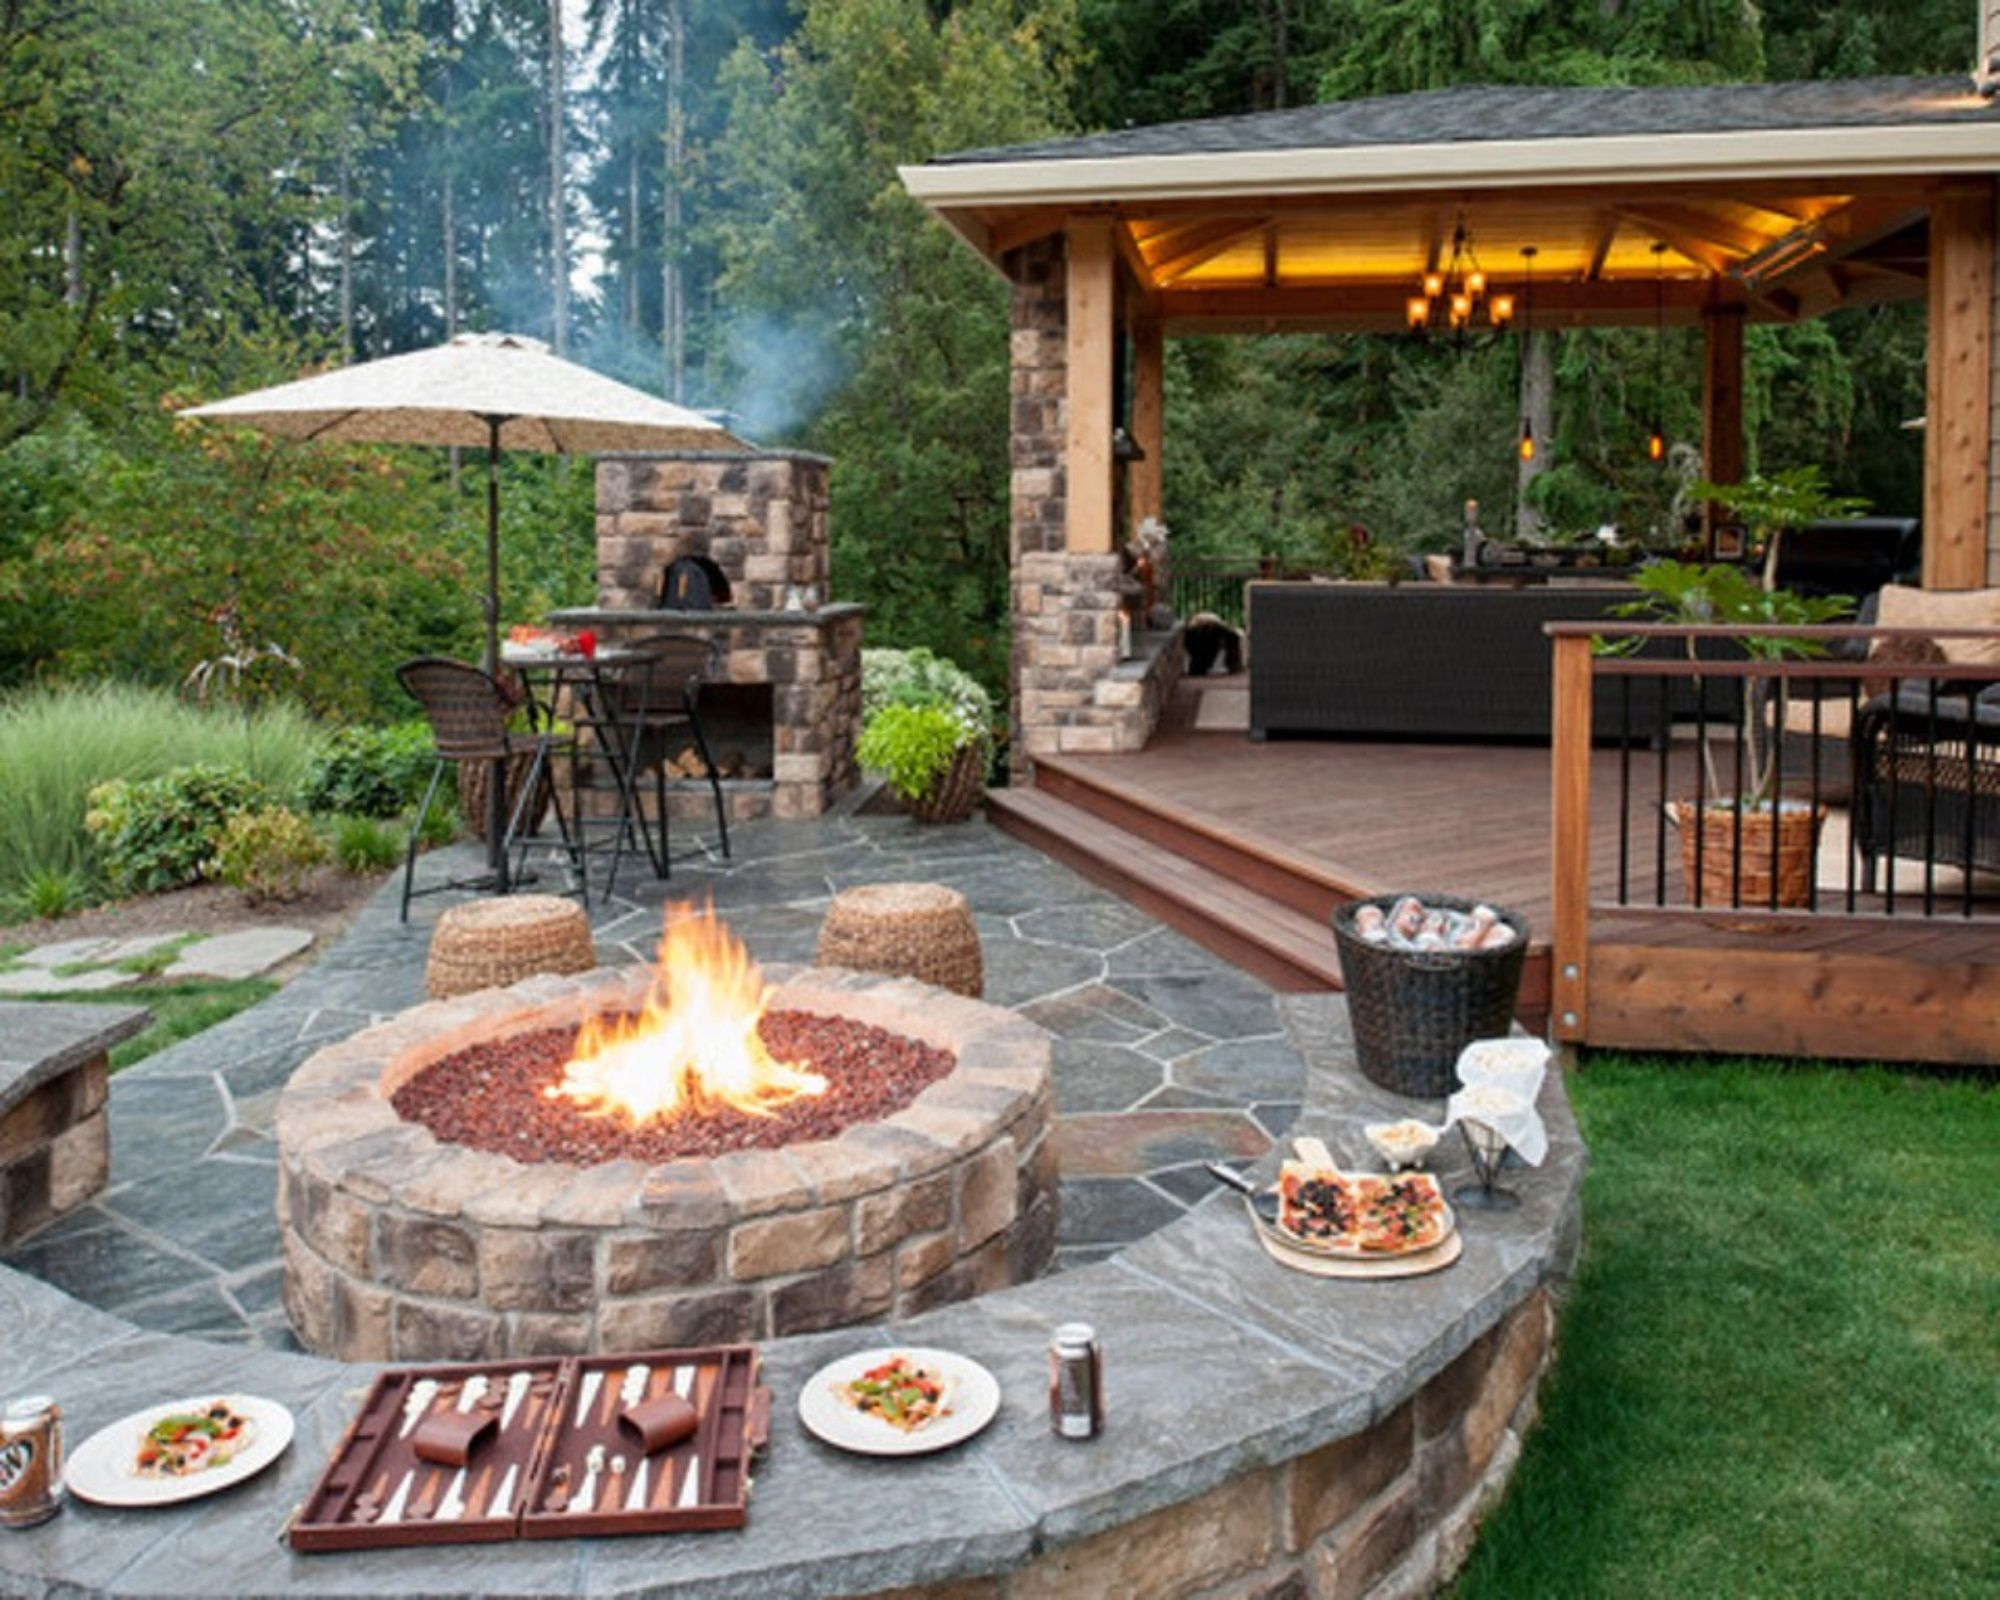 outdoor kitchen patio designs outdoor fire pit patio designs patio ... - Outdoor Kitchens And Patios Designs